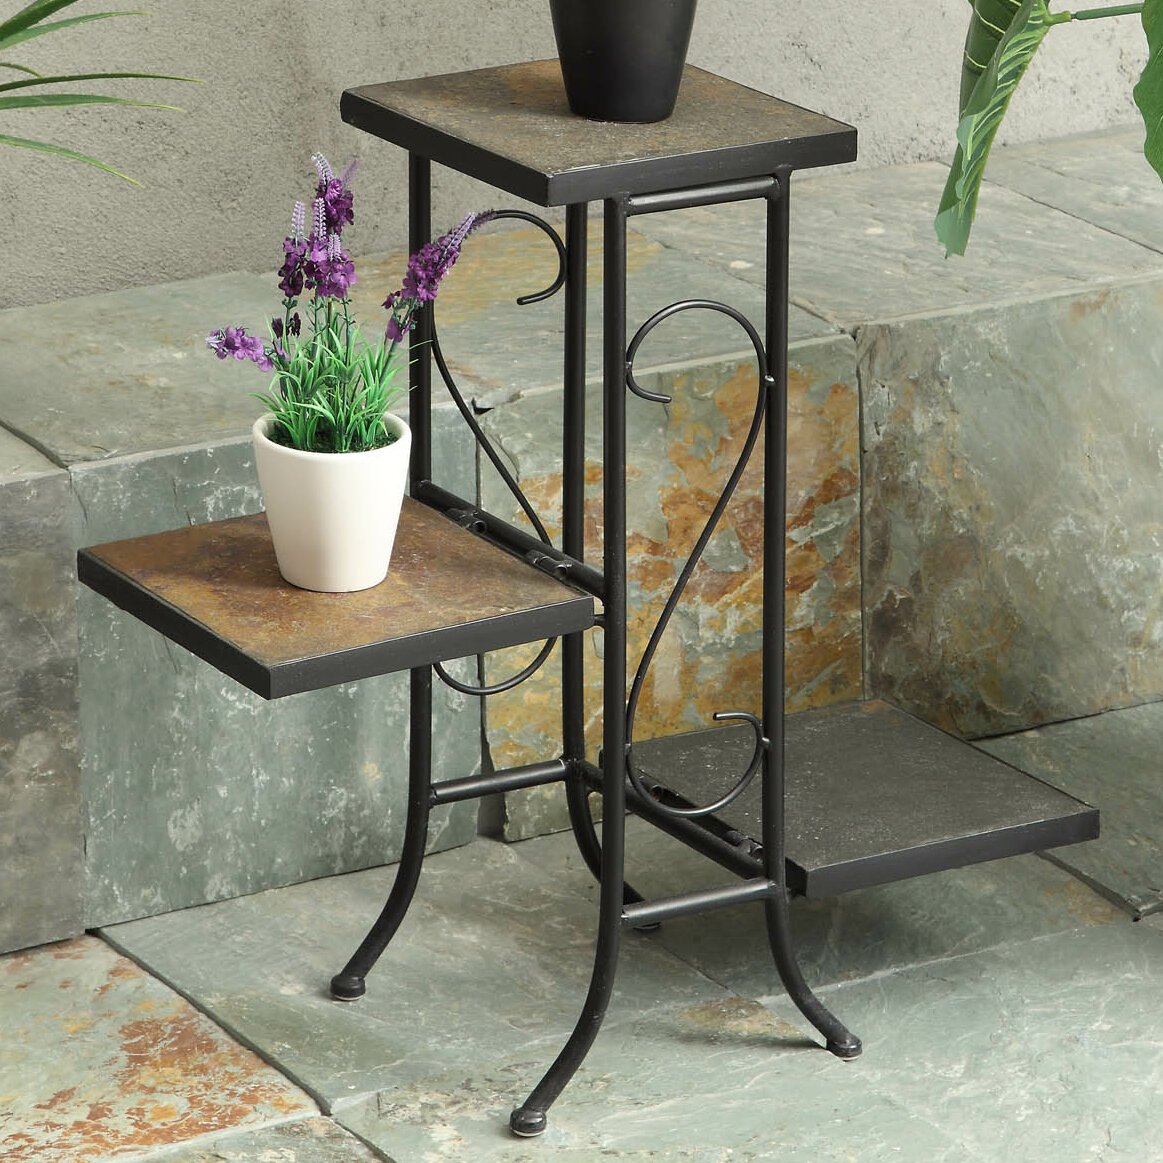 - Triangular Wooden Pot Plant Stand Alone For Indoors In Many Colors